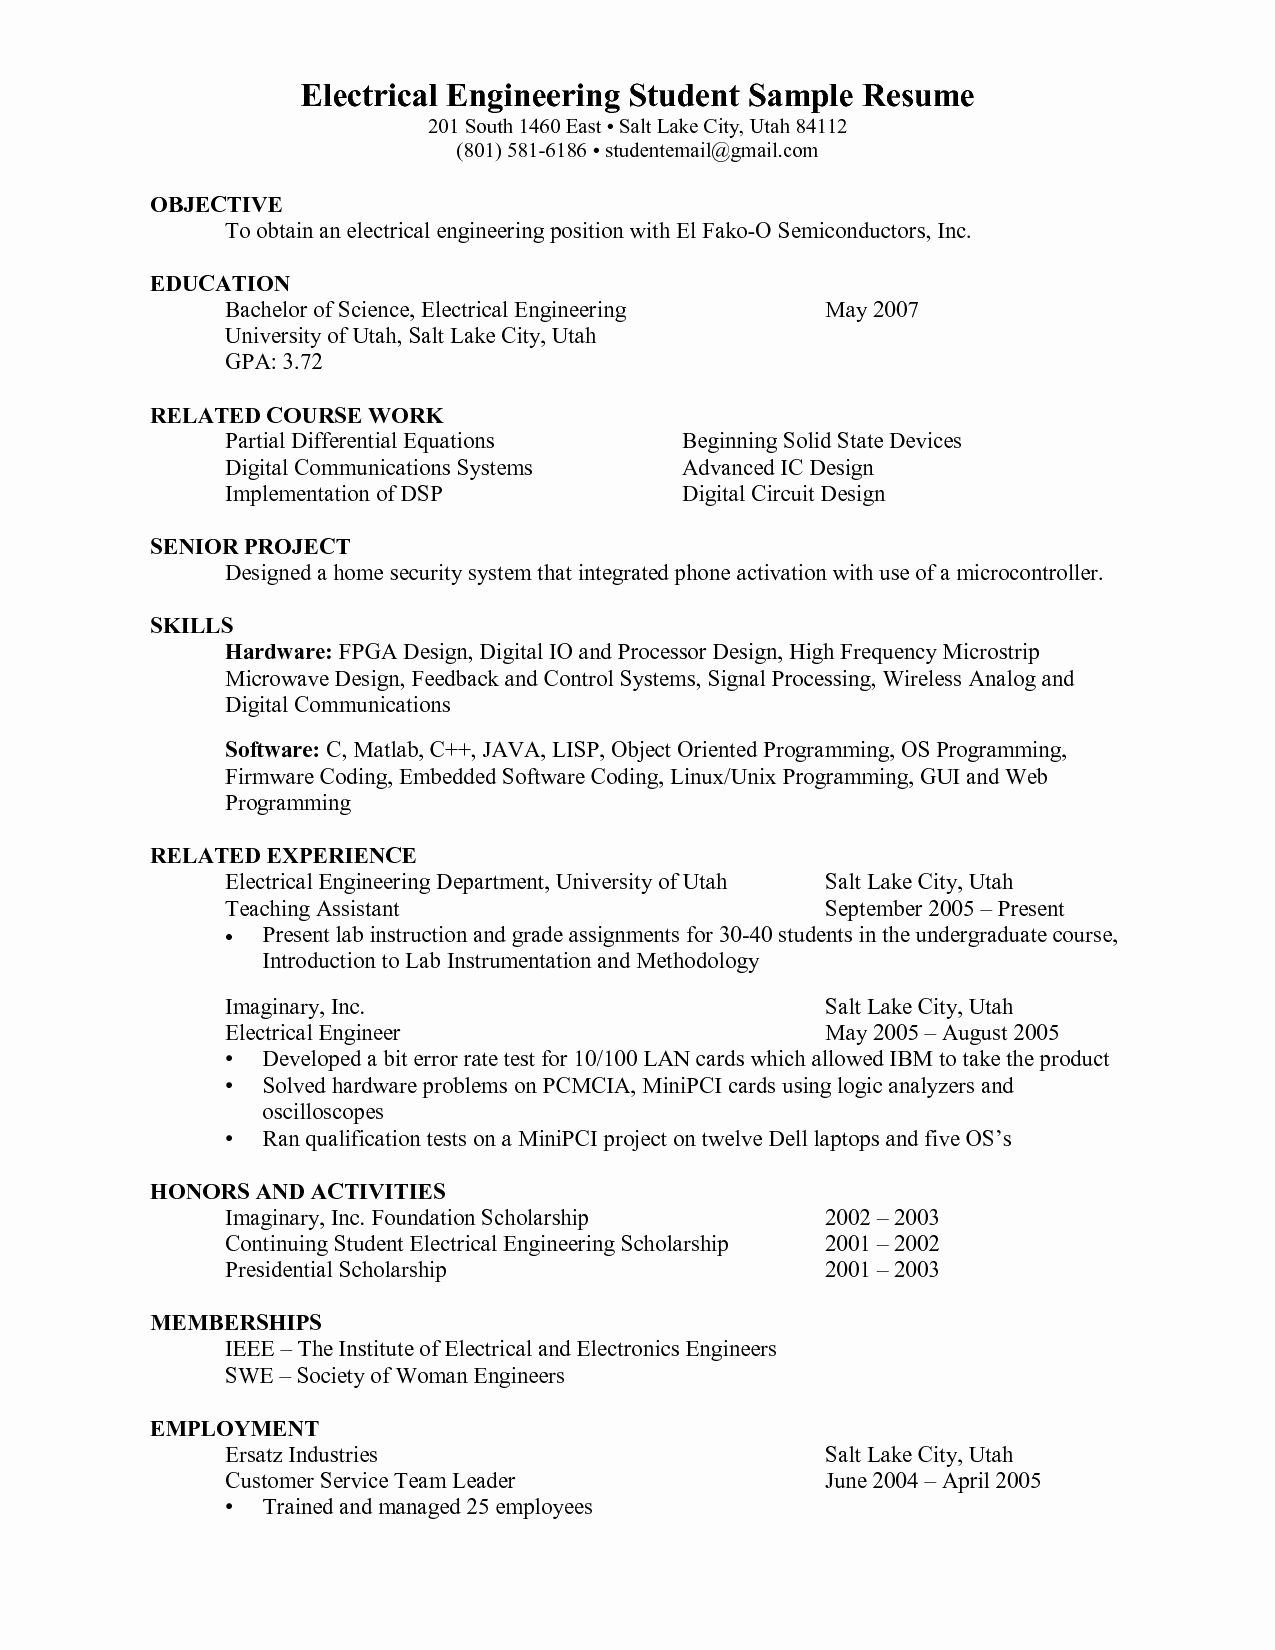 Engineering Student Resume Examples Elegant Electrical Engineering Student Resume